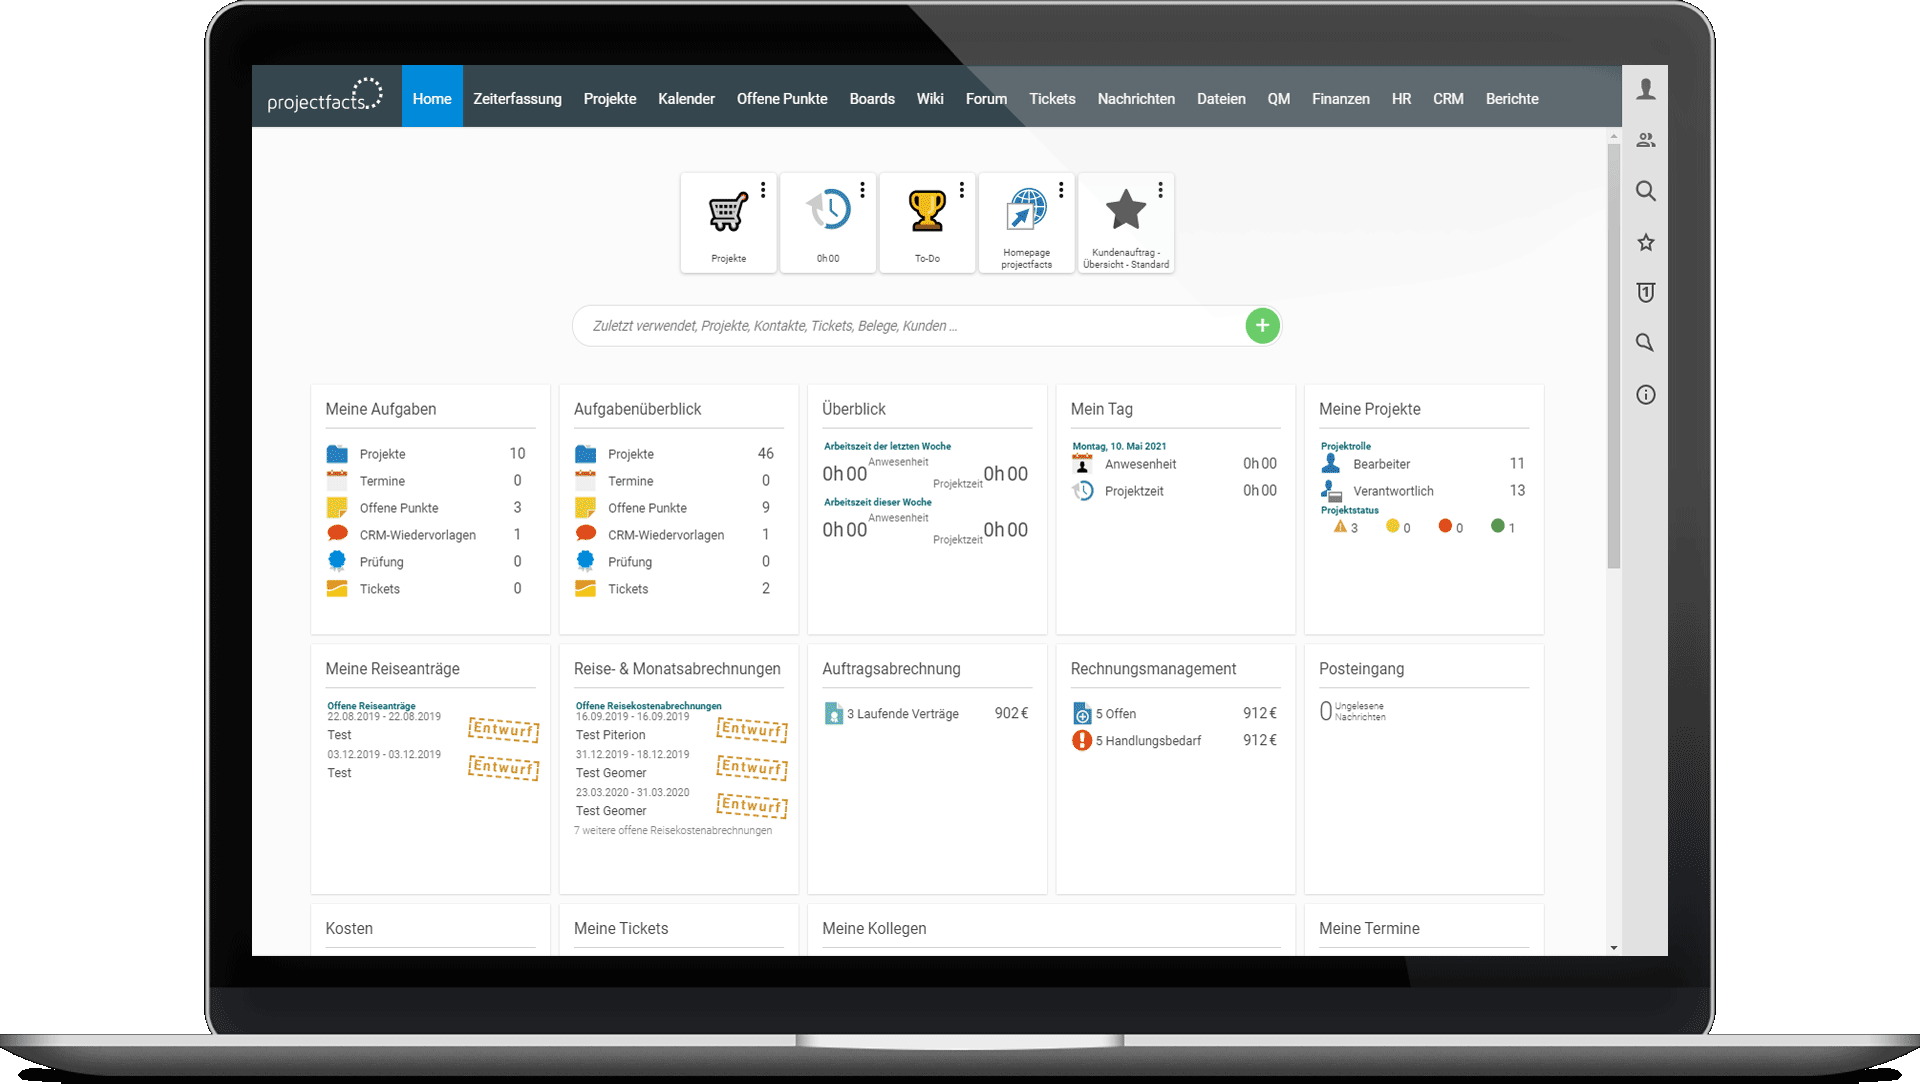 Dashboard in projectfacts